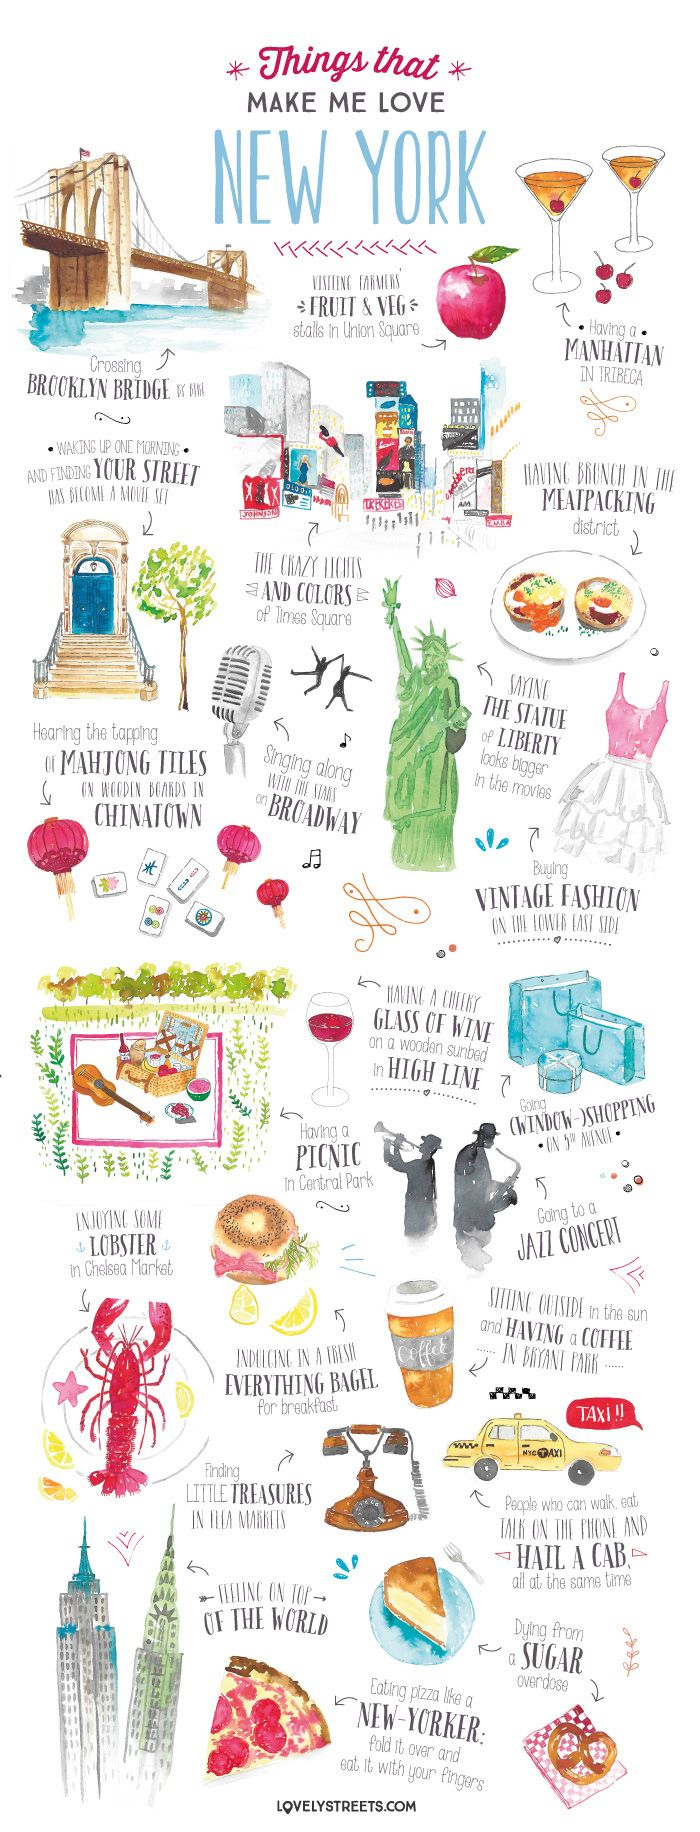 Things that make me love New York - Travel Illustration on Behance Nathalie Ouederni